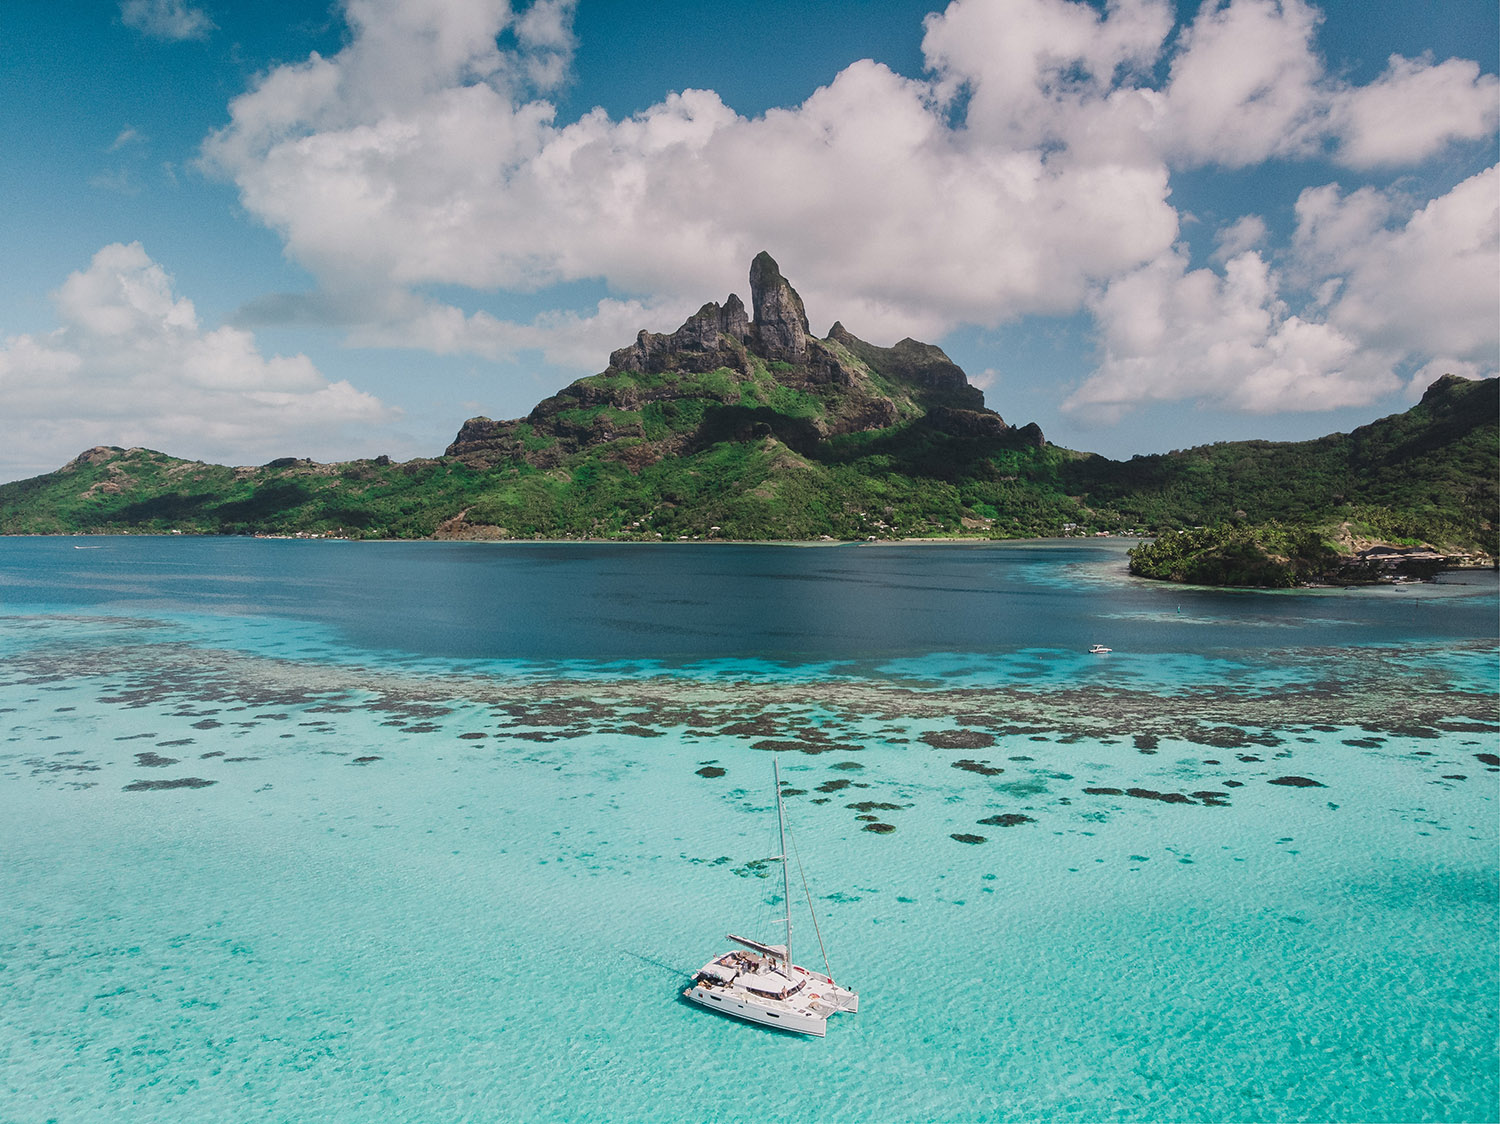 Bora Bora is a small island in French Polynesia surrounded by sand-fringed islets and a turquoise lagoon protected by a coral reef.